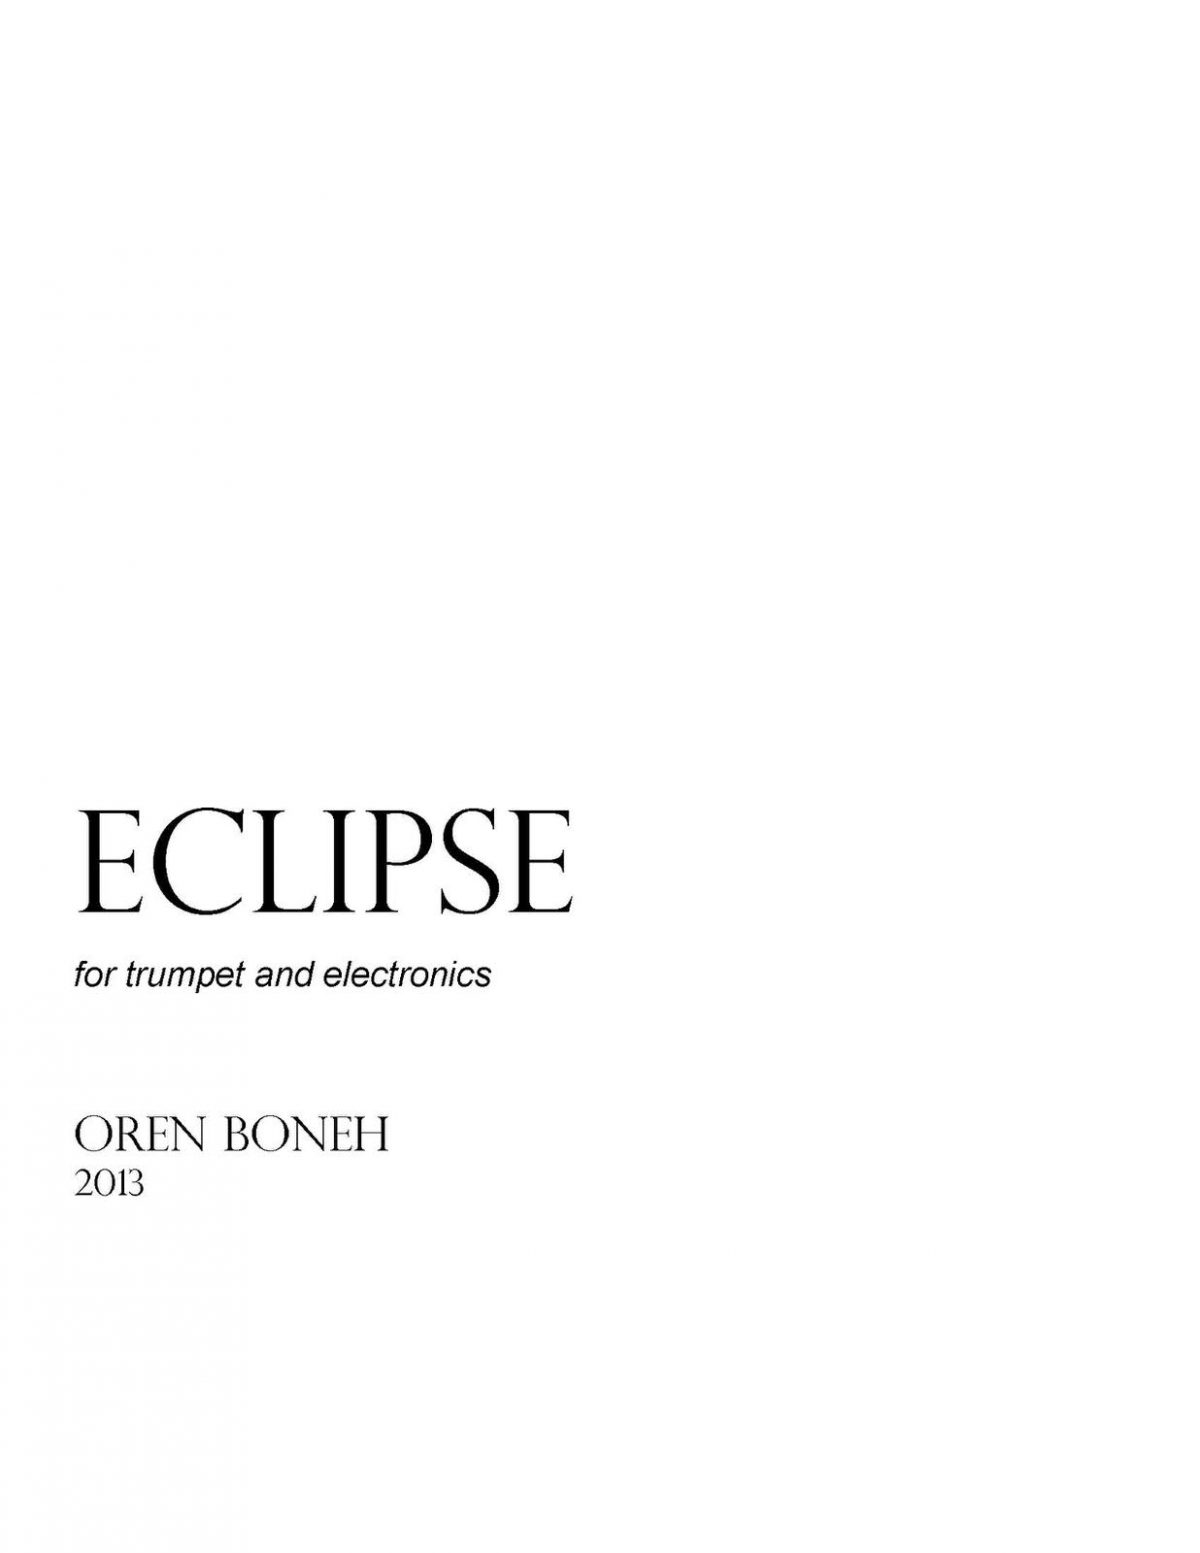 Boneh, Eclipse for Trumpet and Electronics